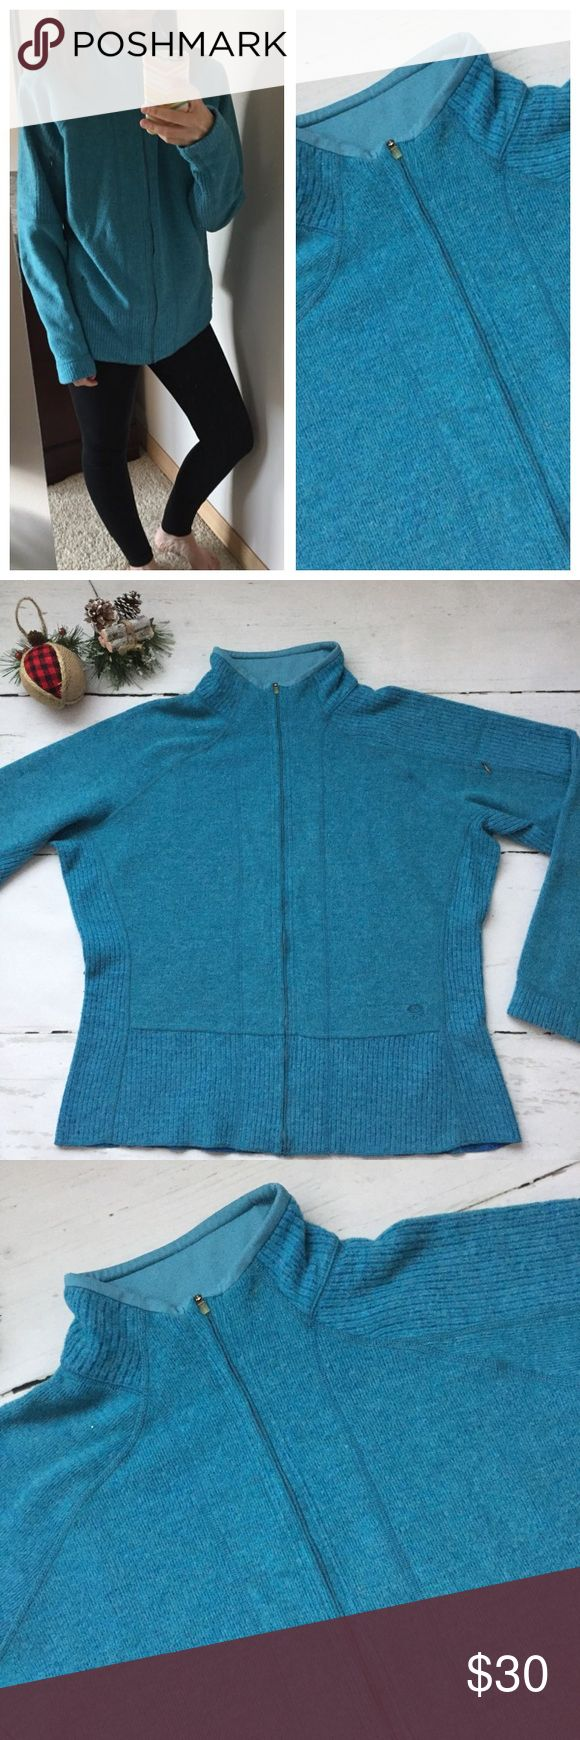 "Mountain Hardwear Turquoise Jacket Mountain Hardwear Turquoise Mock Neck Zip Up! Zip compartment on the Sleeve! Size: XL Measurements: B 24"" L 26"" Polyester Wool and Nylon Mountain Hardwear Jackets & Coats"